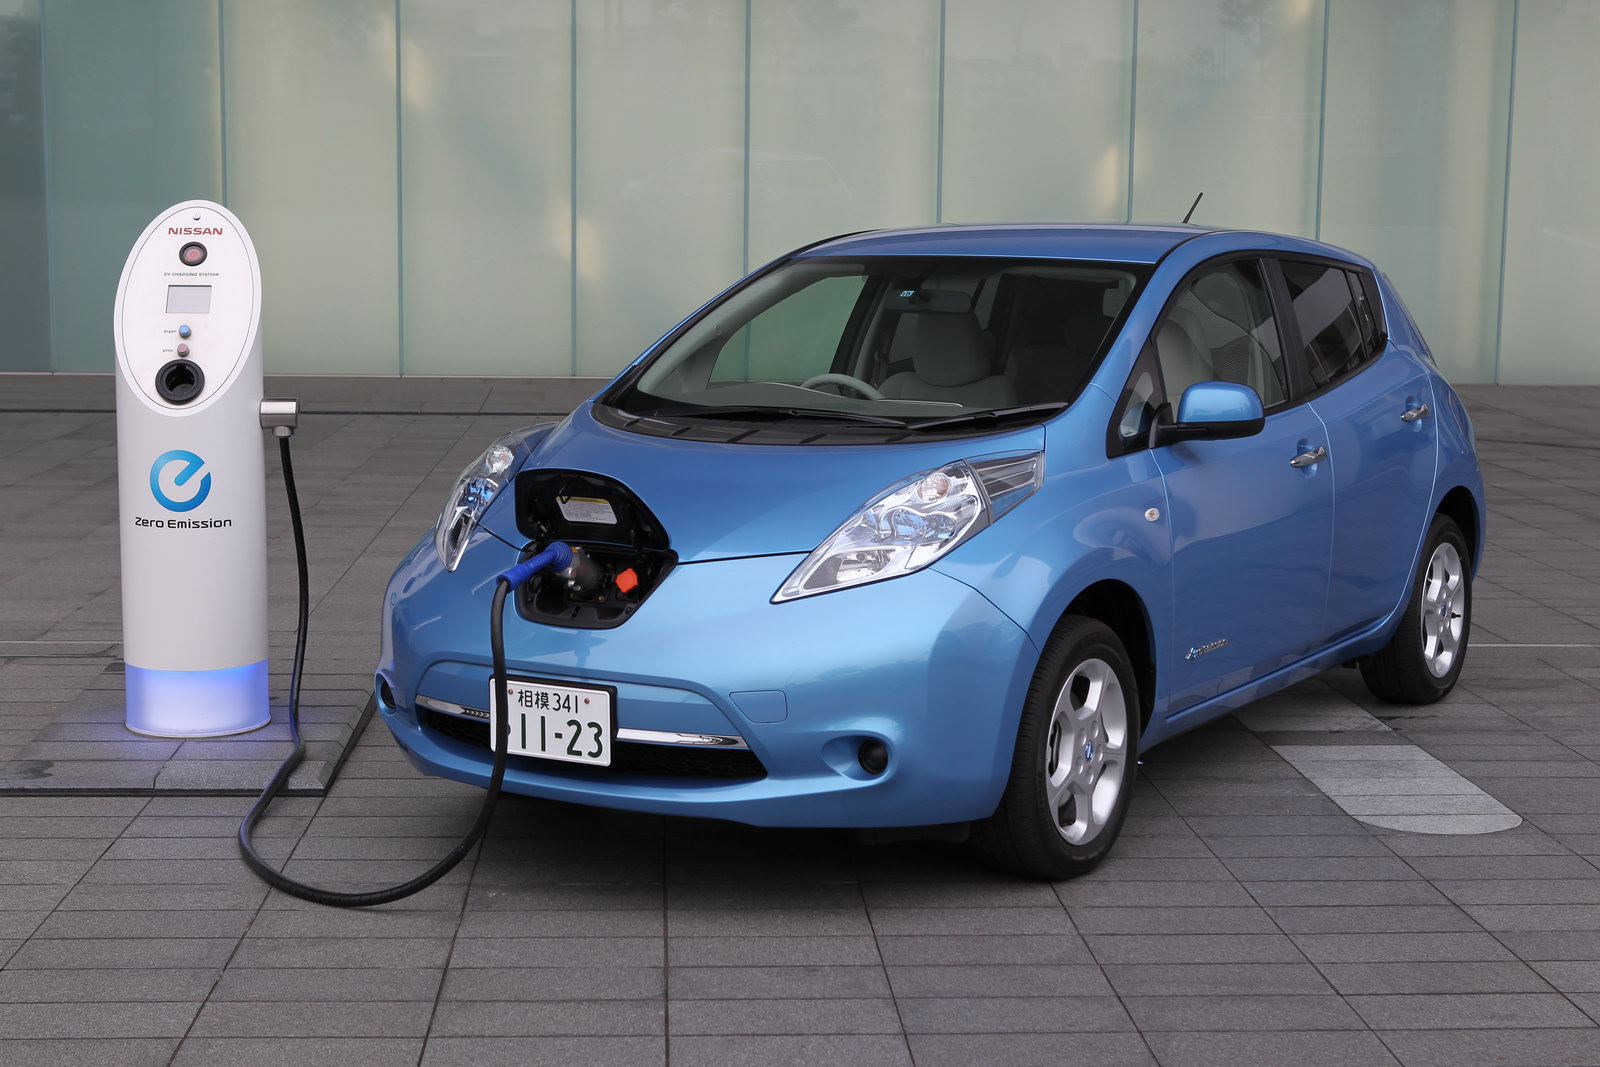 Insurance companies await propagation of electric cars - Daily News Egypt